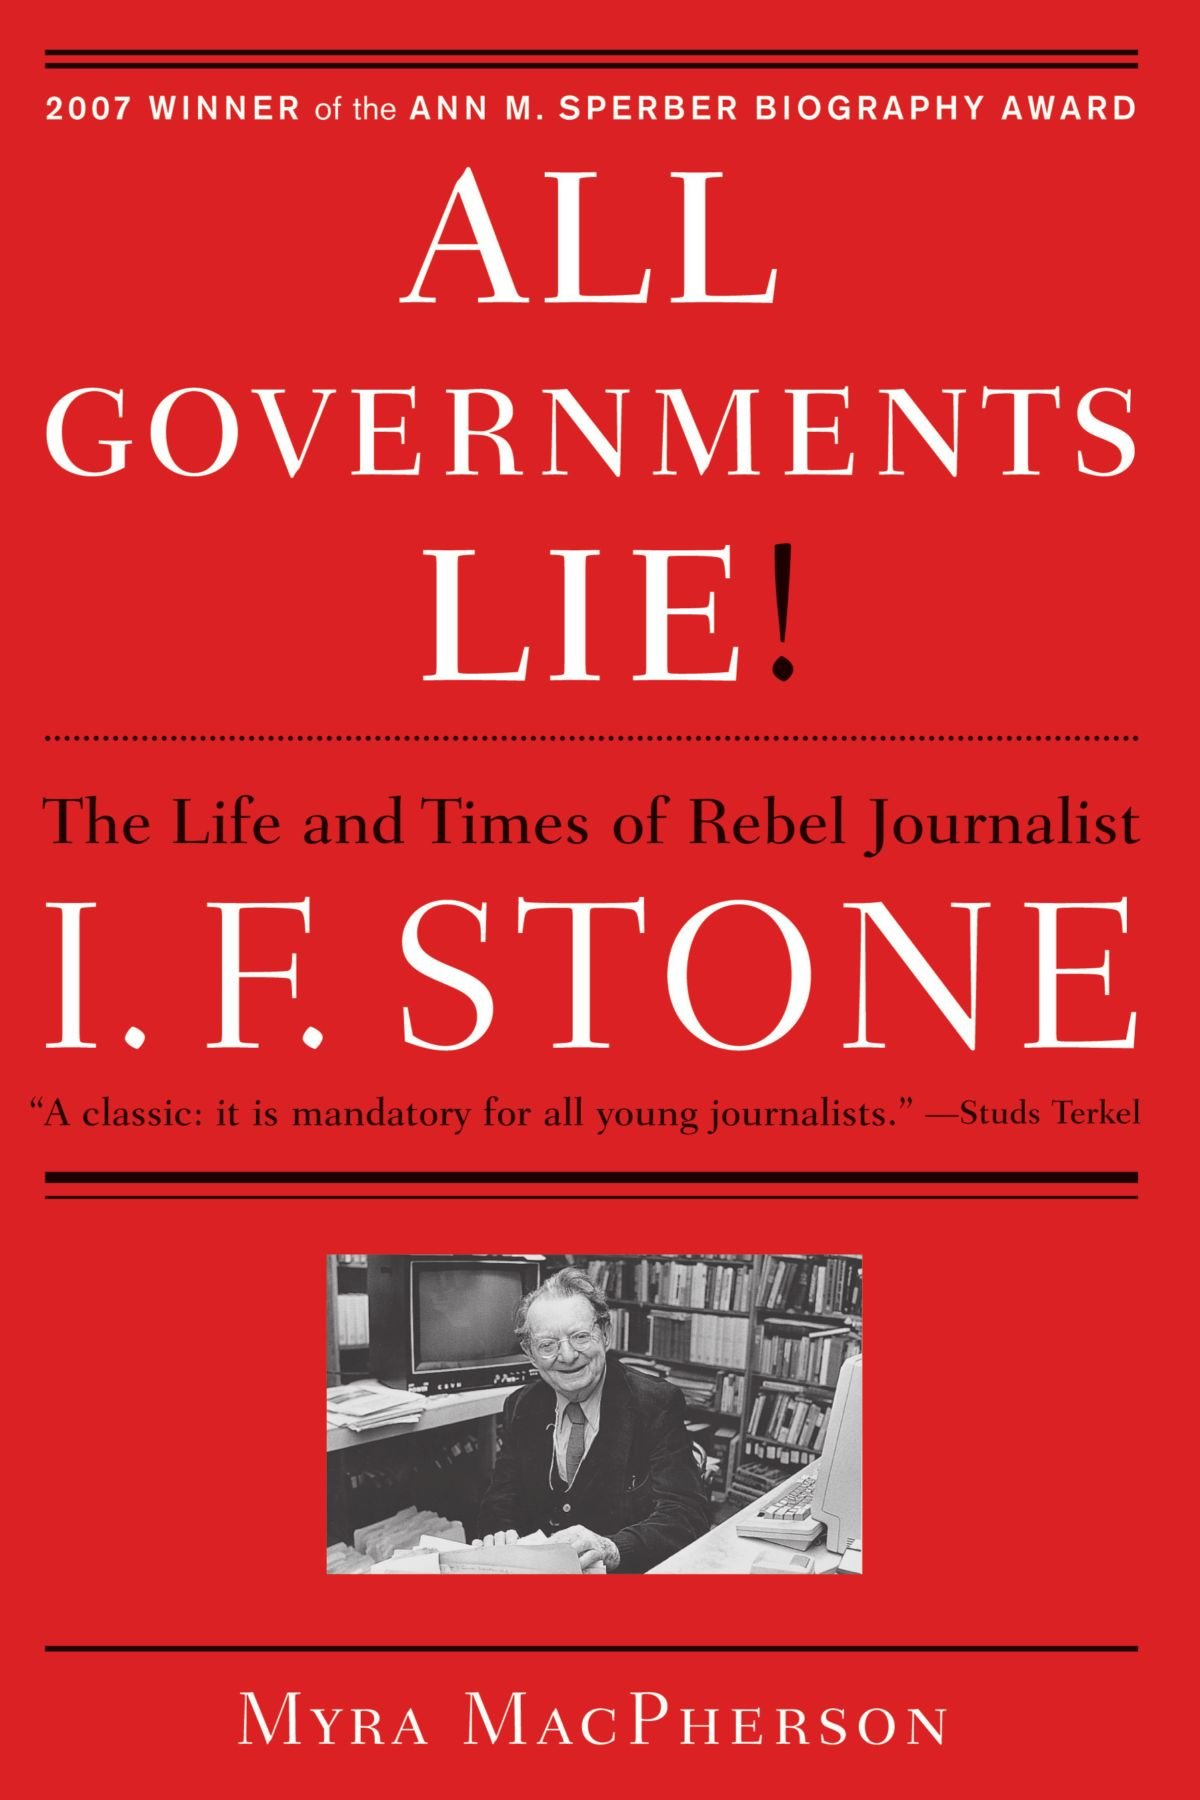 All Governments Lie: The Life and Times of Rebel Journalist I. F. Stone